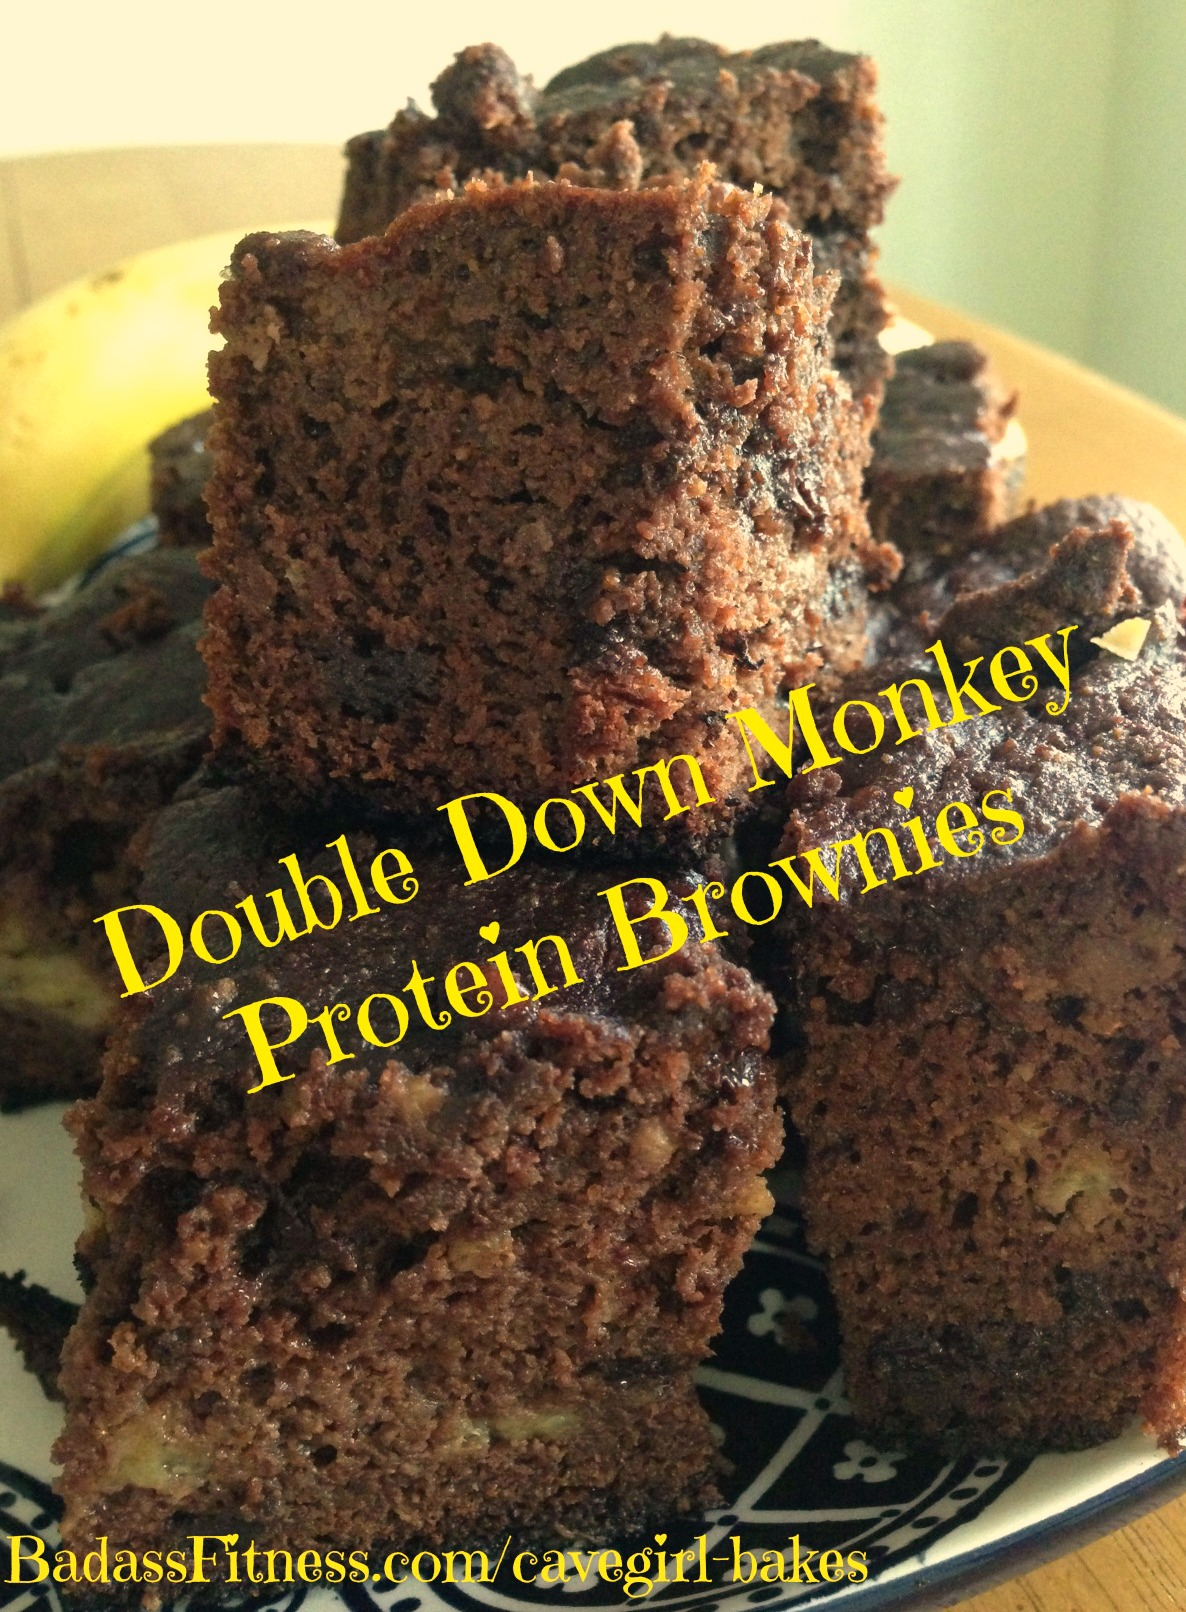 Cave Girl Bakes Double-Down Monkey Protein Brownies